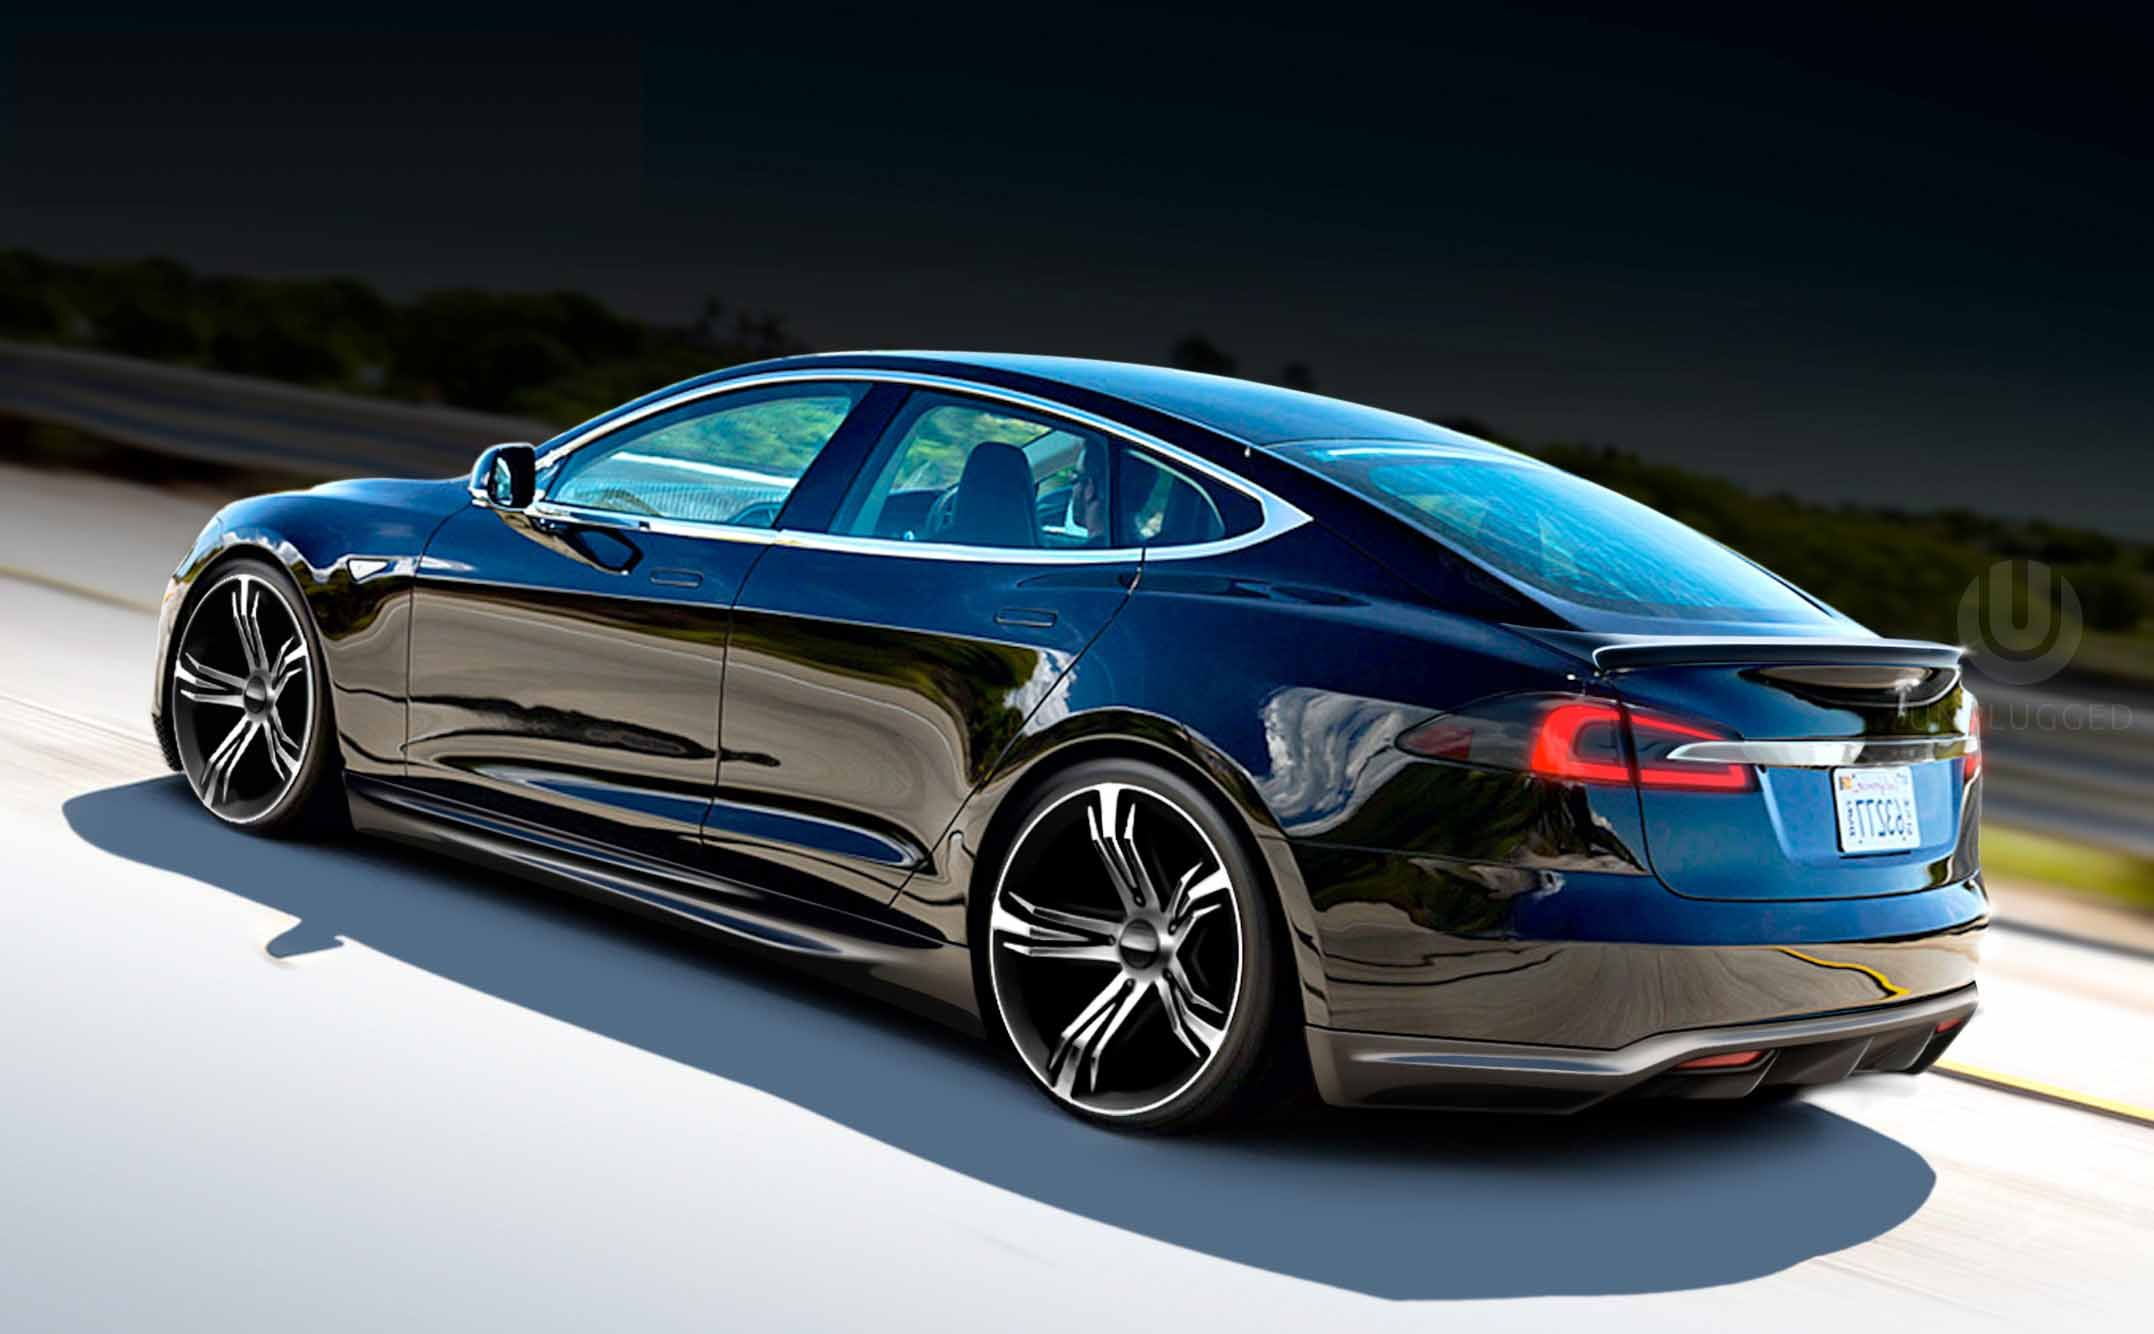 TeslaModelSLatestHDWallpapersFreeDownload7.jpg